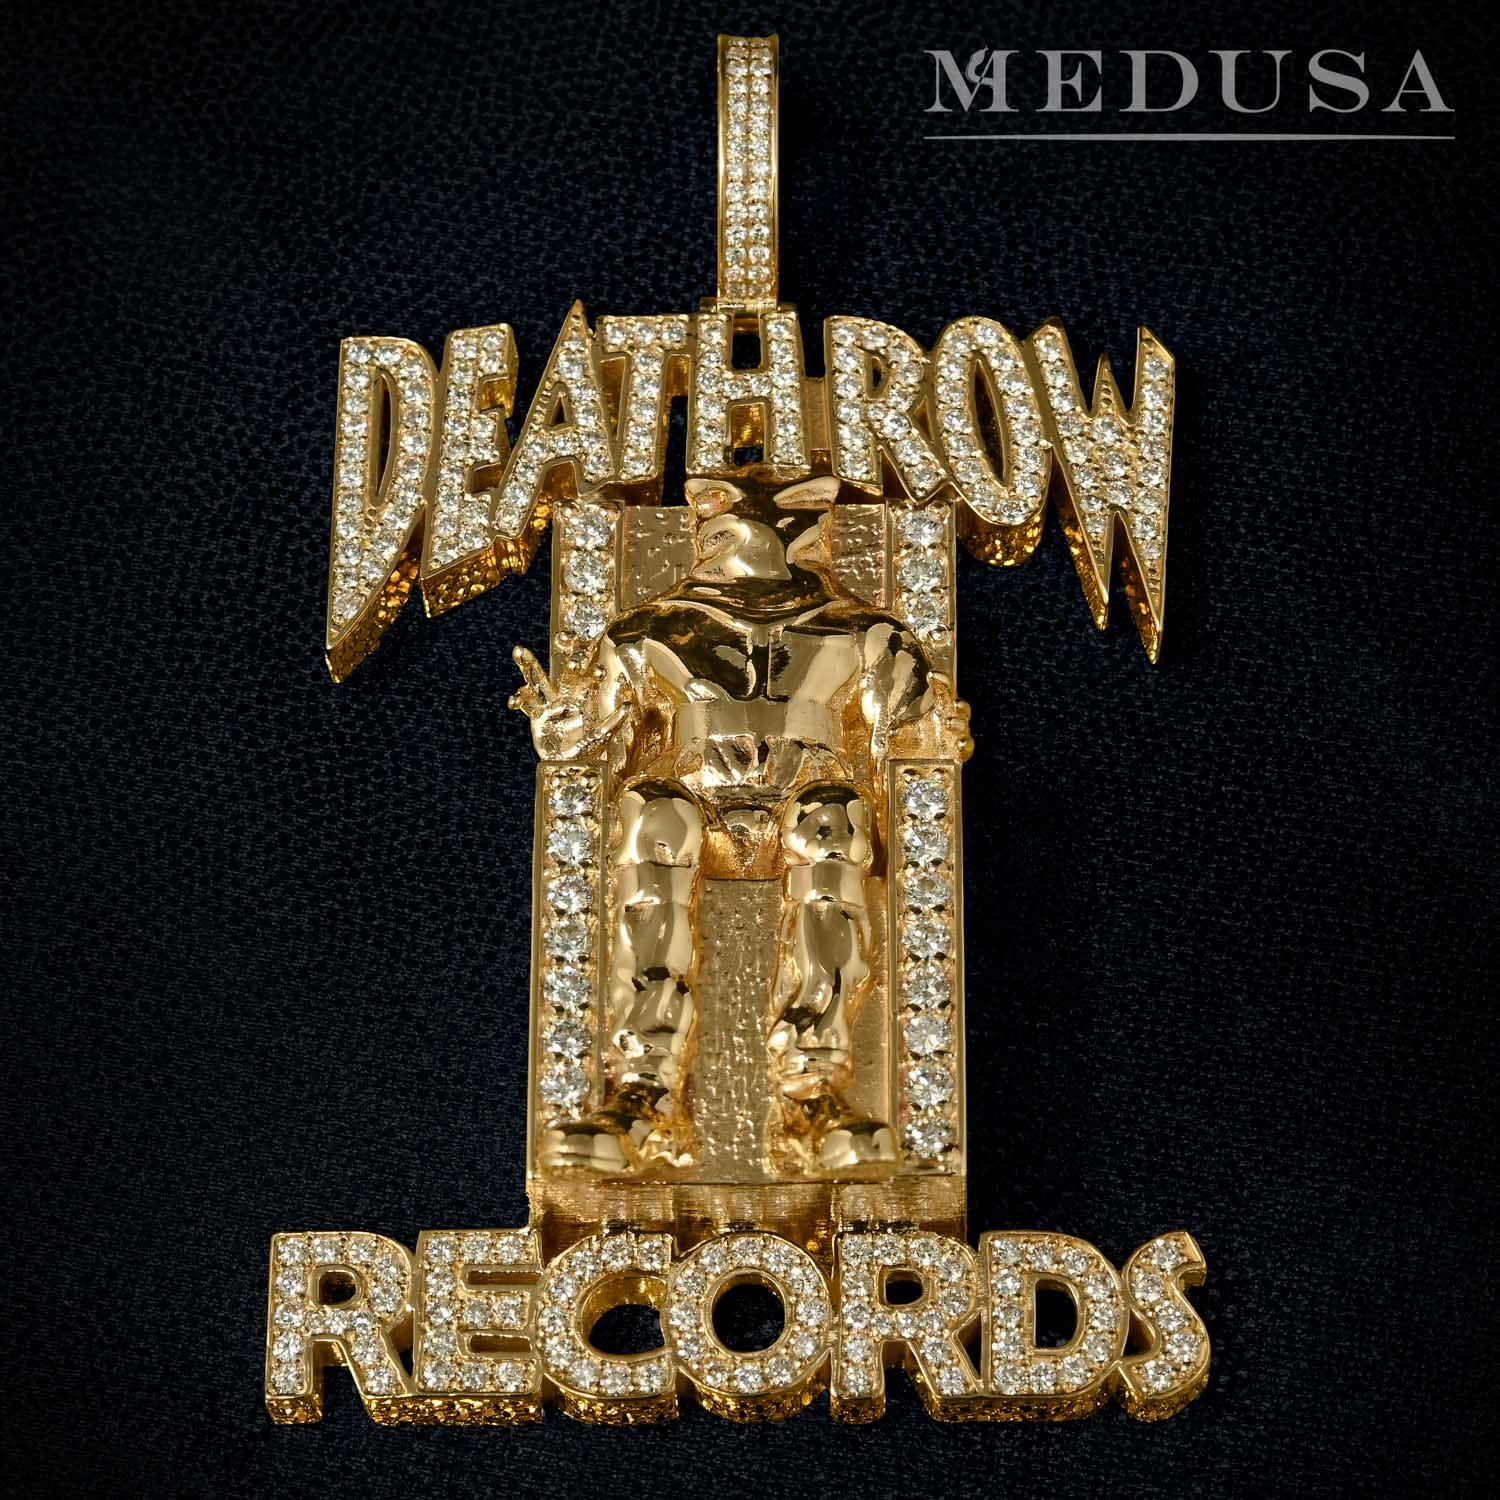 Pendentif Deathrow Record en Or et Diamant